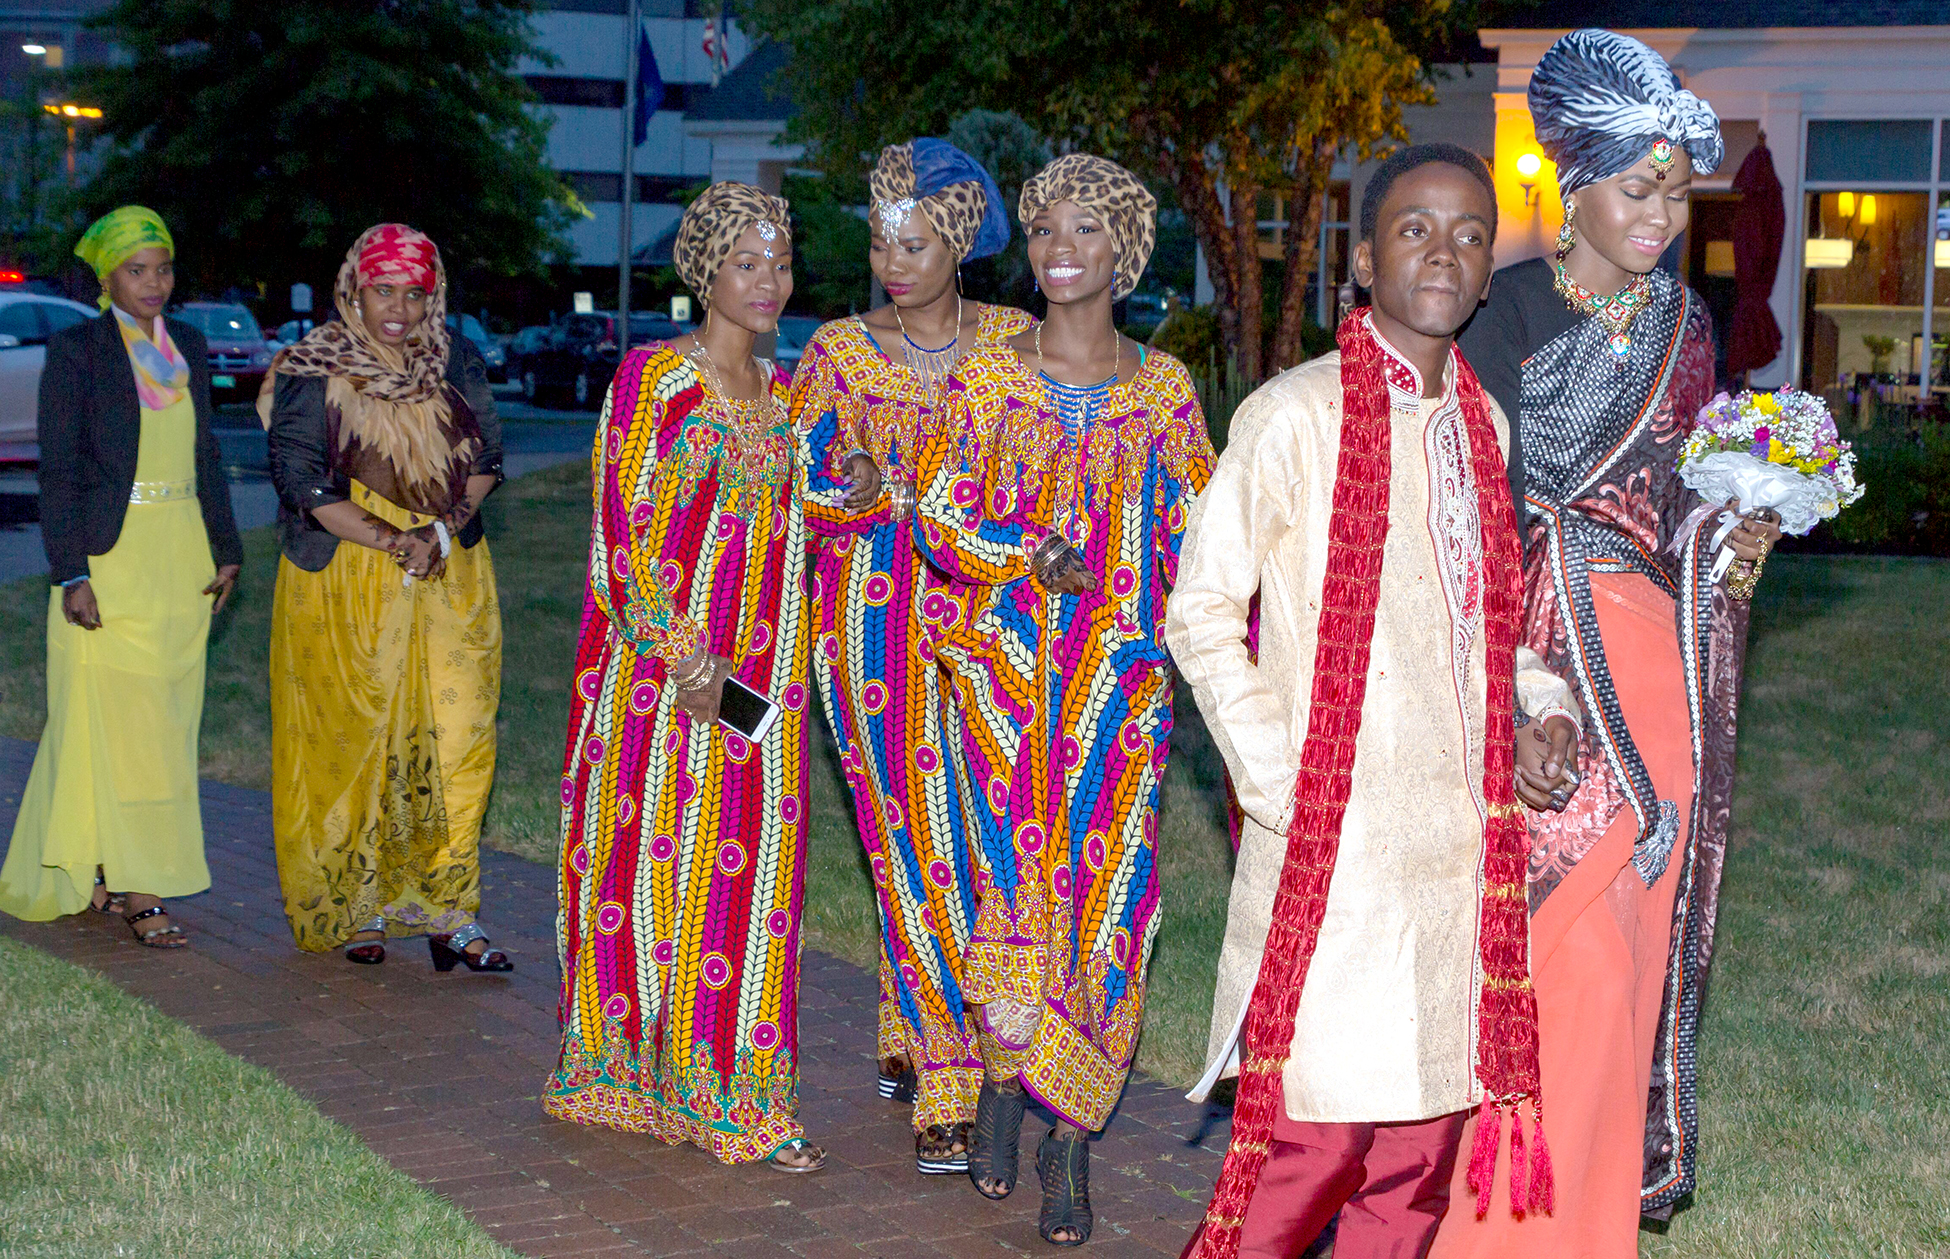 Tying the Knot: Somali wedding adheres to tradition